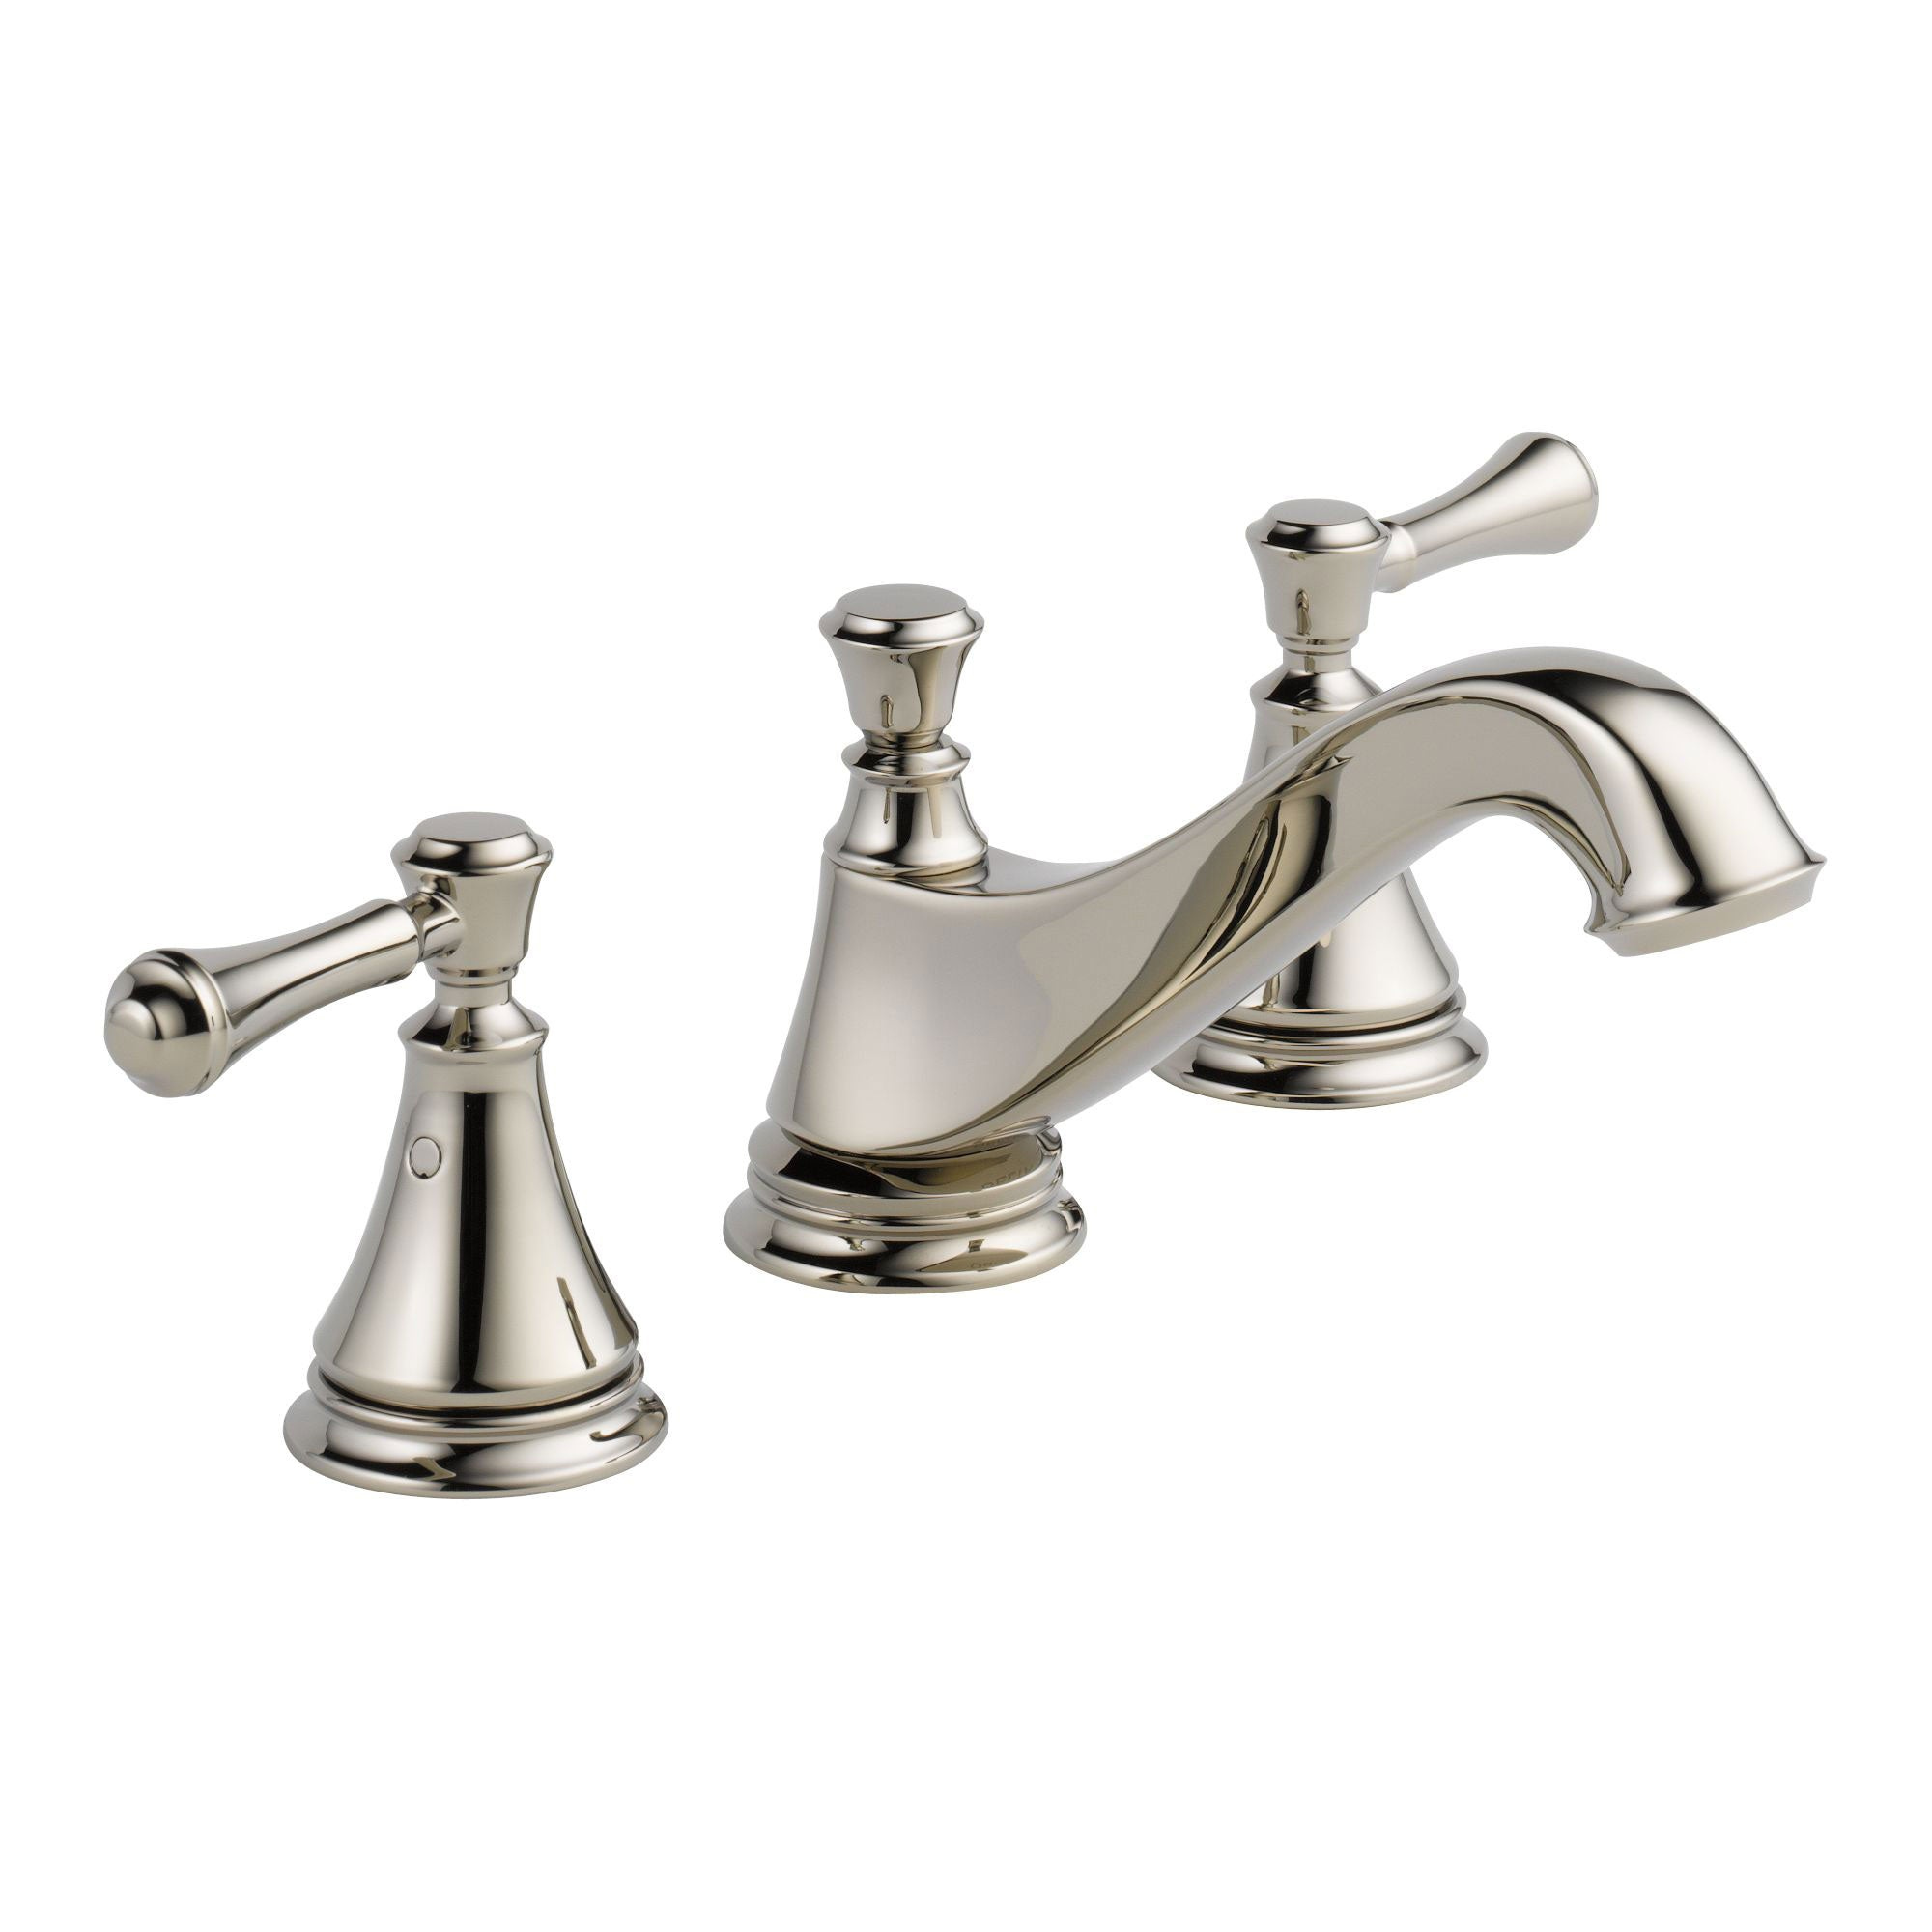 Delta Cassidy Polished Nickel Finish Widespread Lavatory Low Arc Spout Bathroom Sink Faucet INCLUDES Two Lever Handles and Matching Metal Pop-Up Drain D1315V